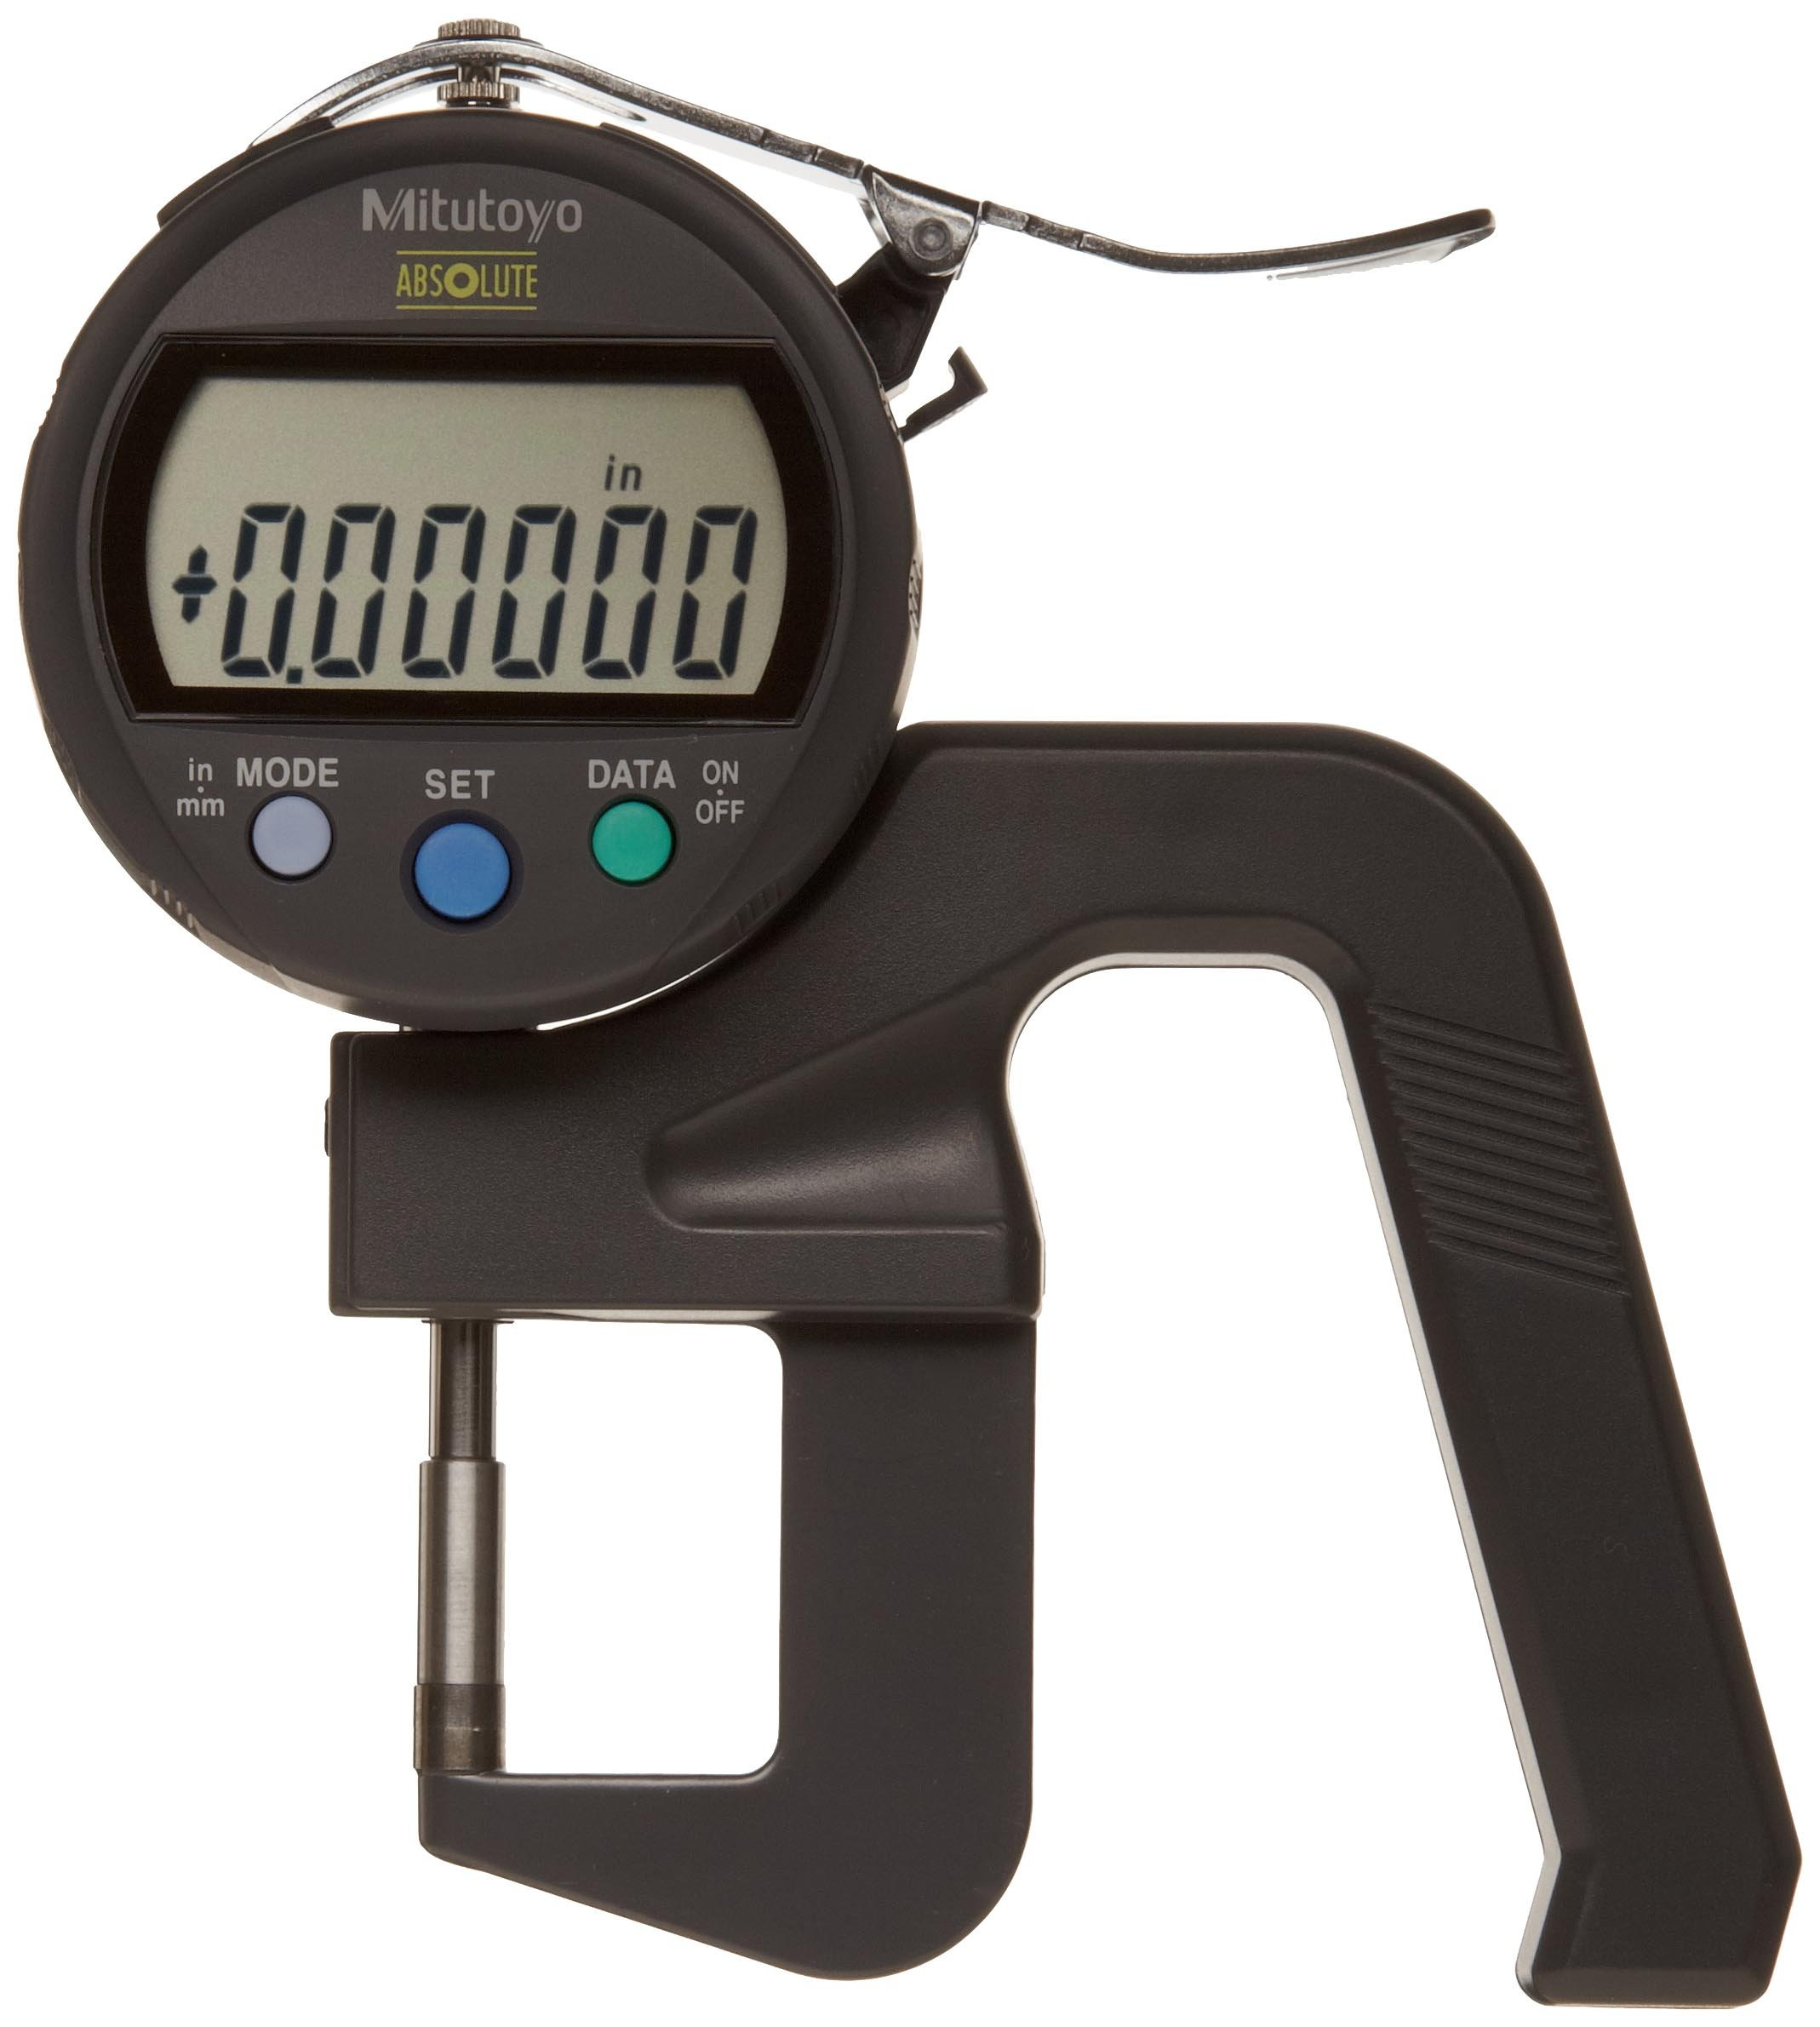 Mitutoyo 547-400S Digimatic IDC Thickness Gage, Flat Anvil, High Accuracy Type, 0 - 0.47''/0-12mm Range, 0.00005''/0.001mm Resolution, +/-0.00015'' Accuracy by Mitutoyo